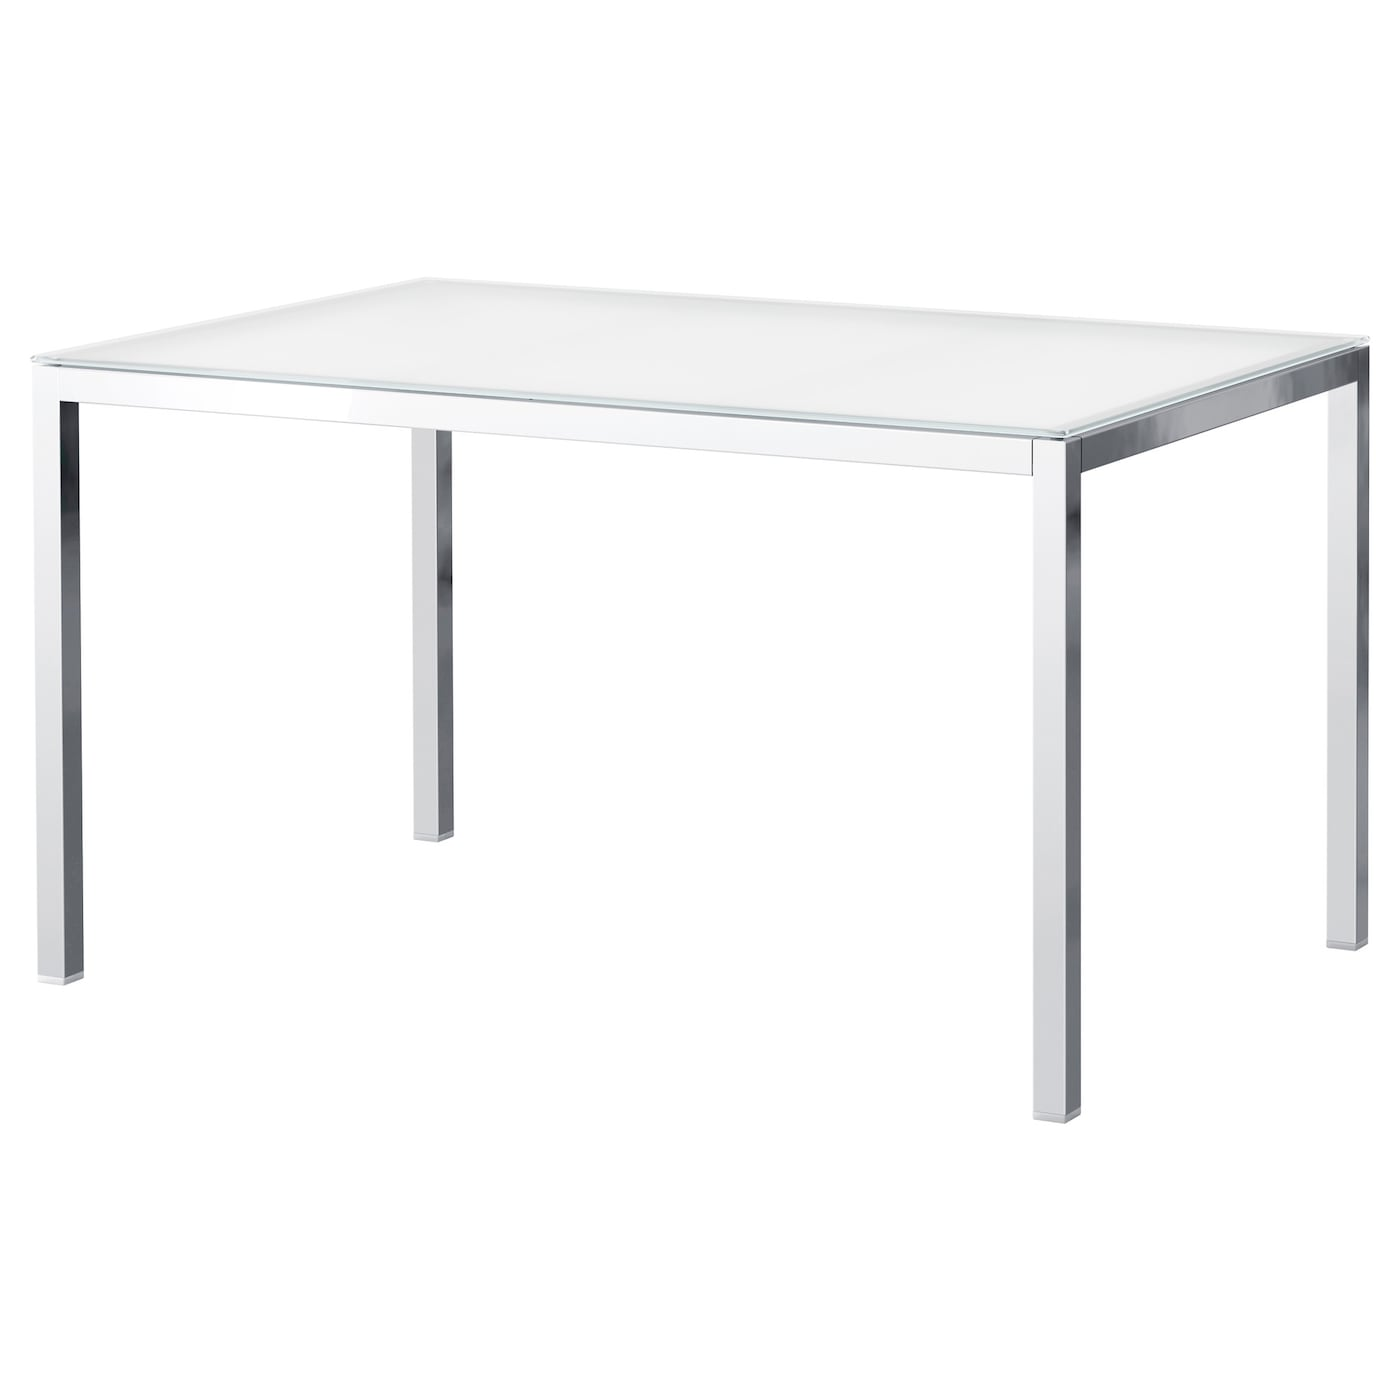 IKEA TORSBY Table Seats 4